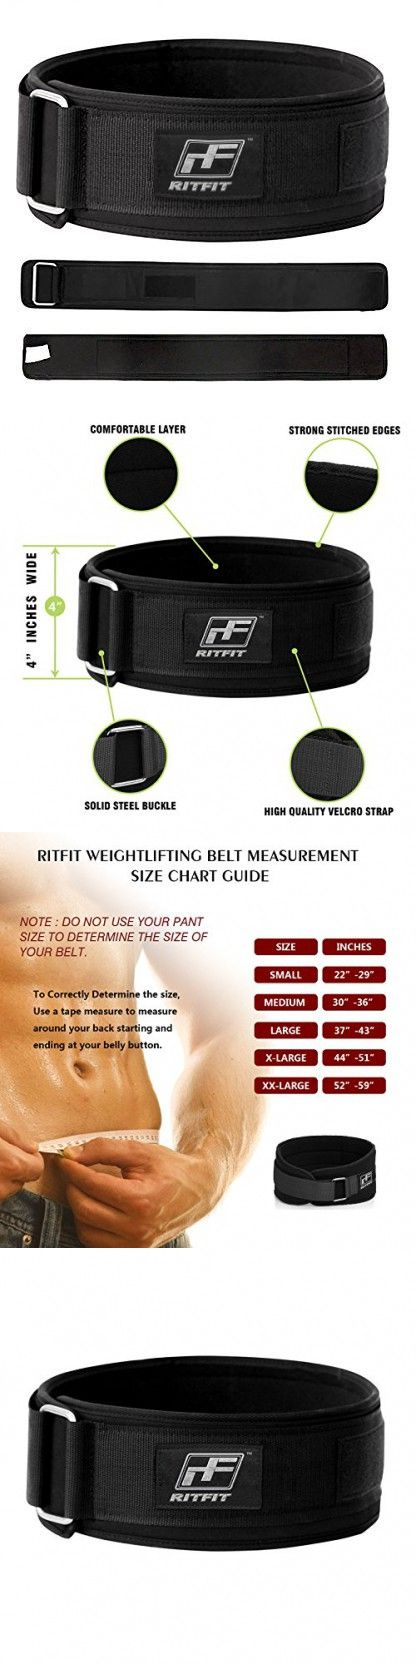 RitFit Weight Lifting Belts 4 Inches (XXL)